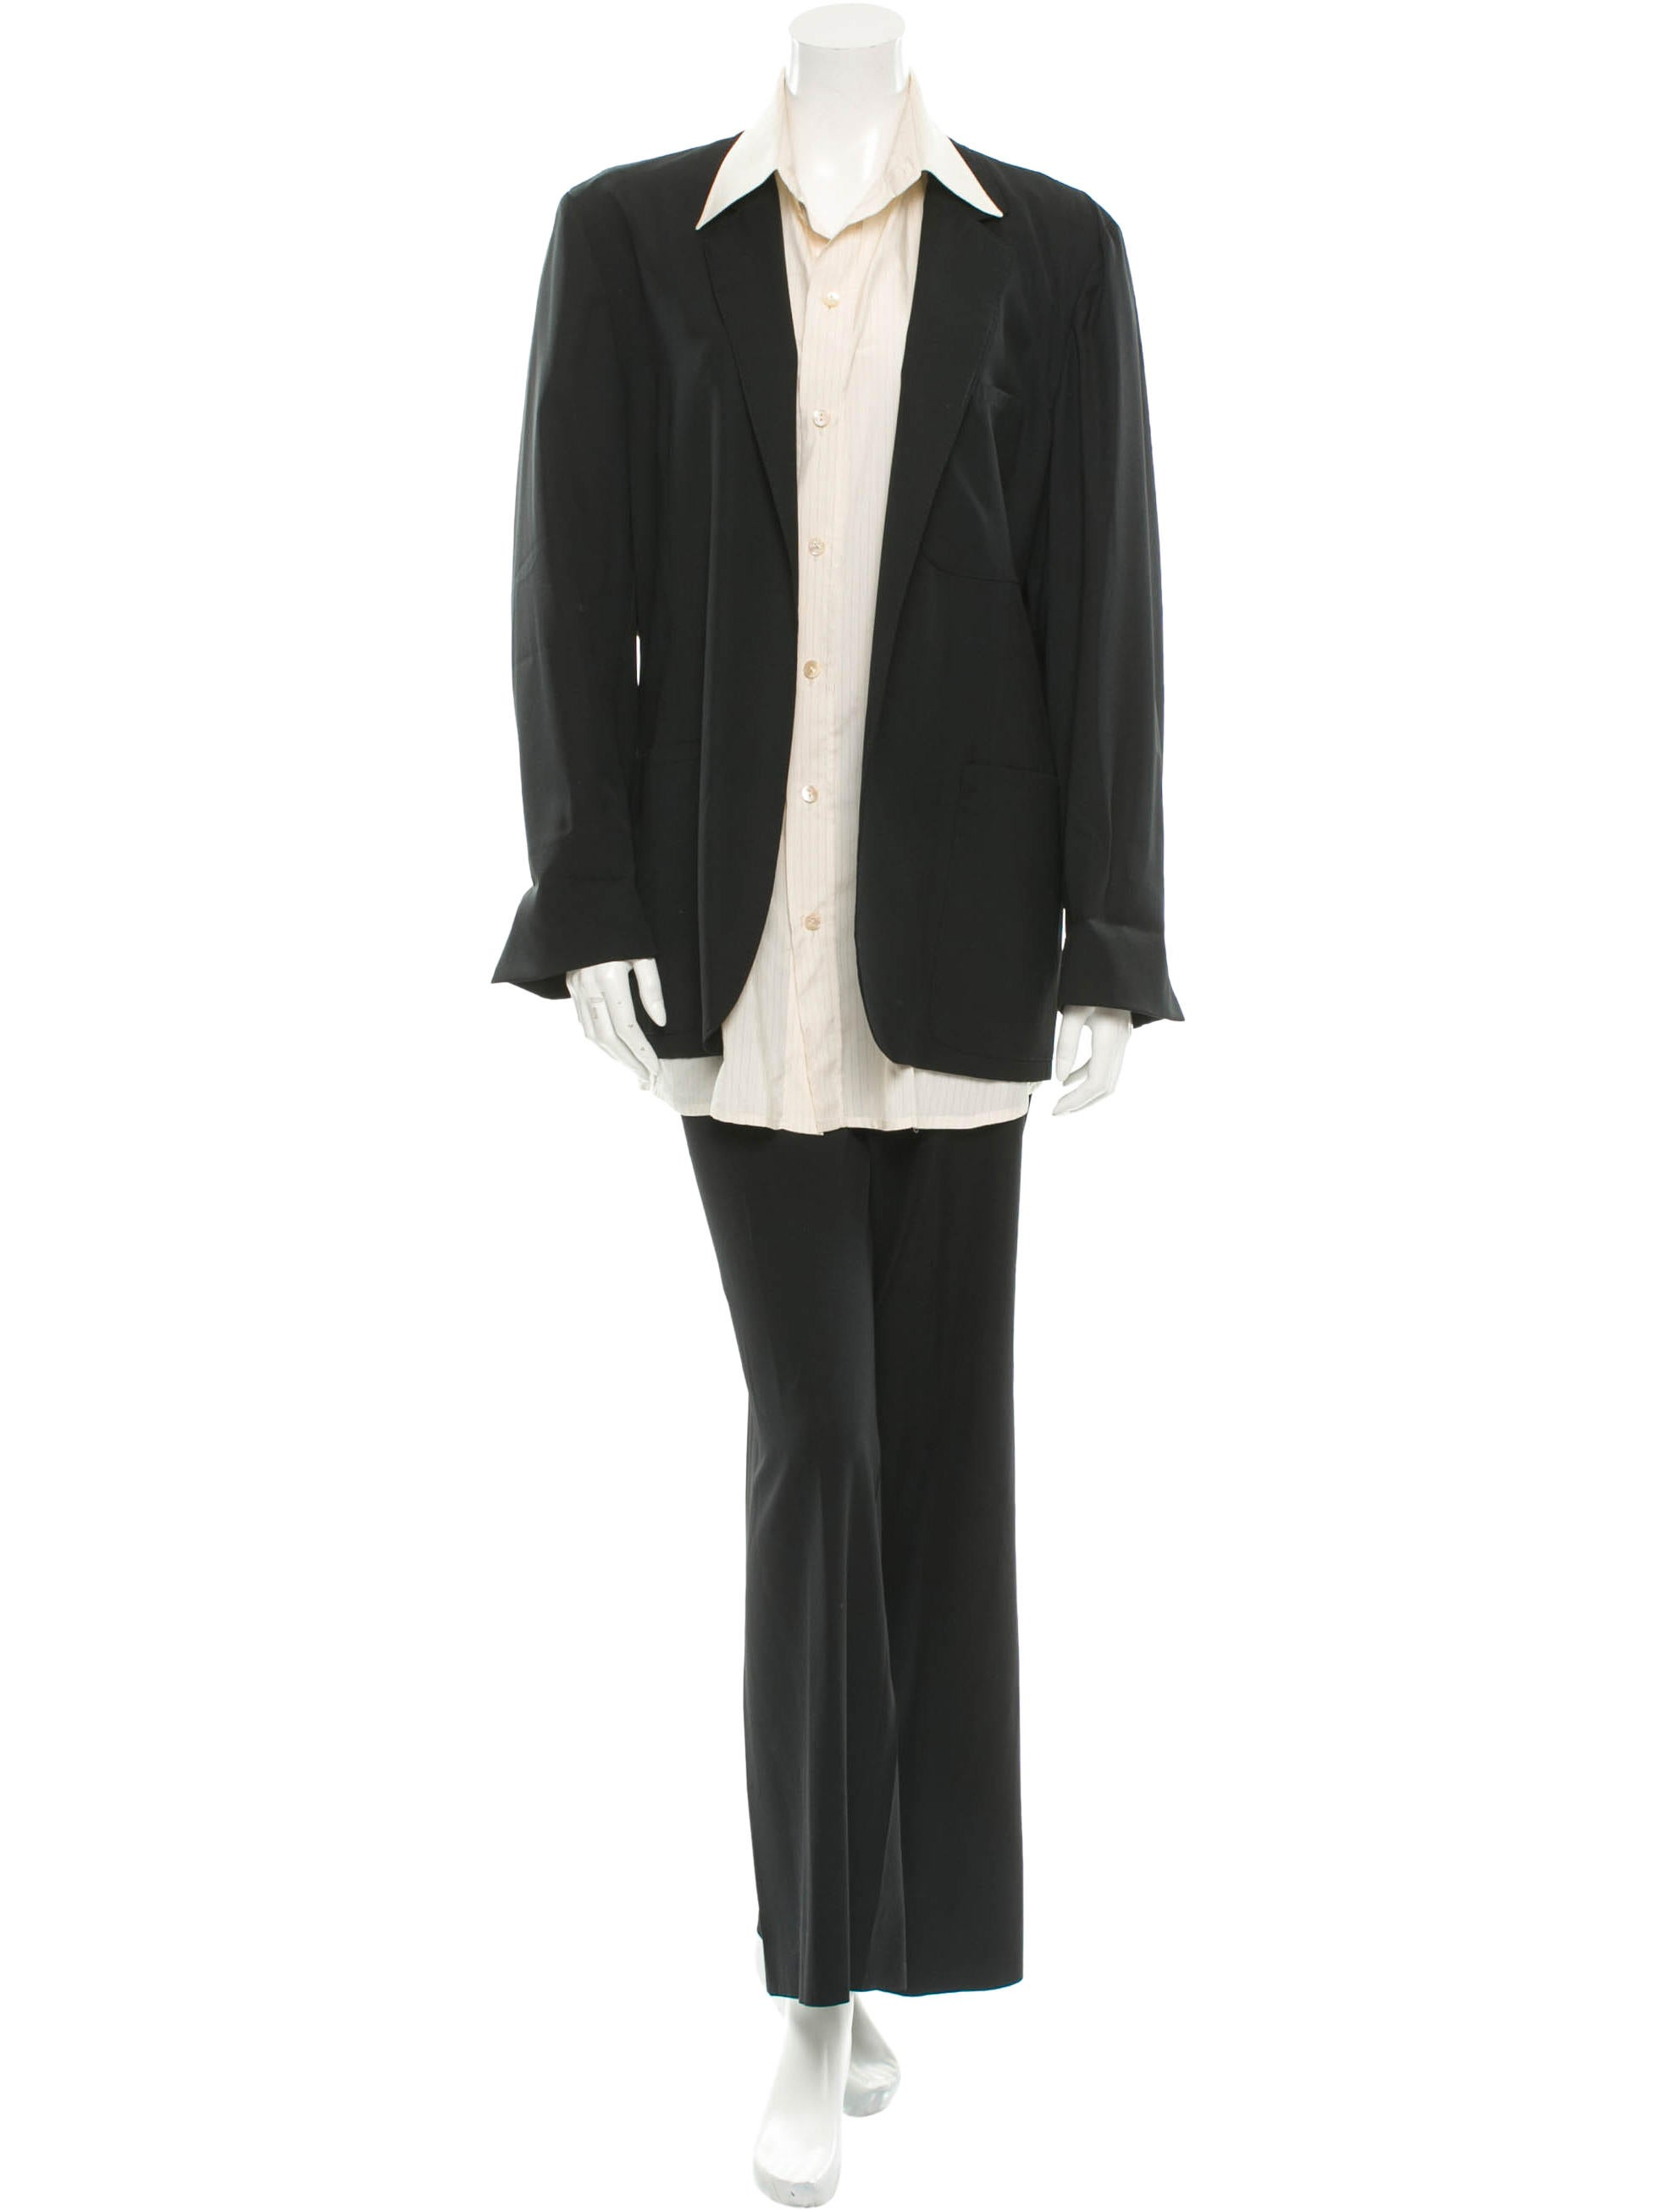 Jean paul gaultier pantsuit clothing jea22509 the for Jean paul gaultier clothing